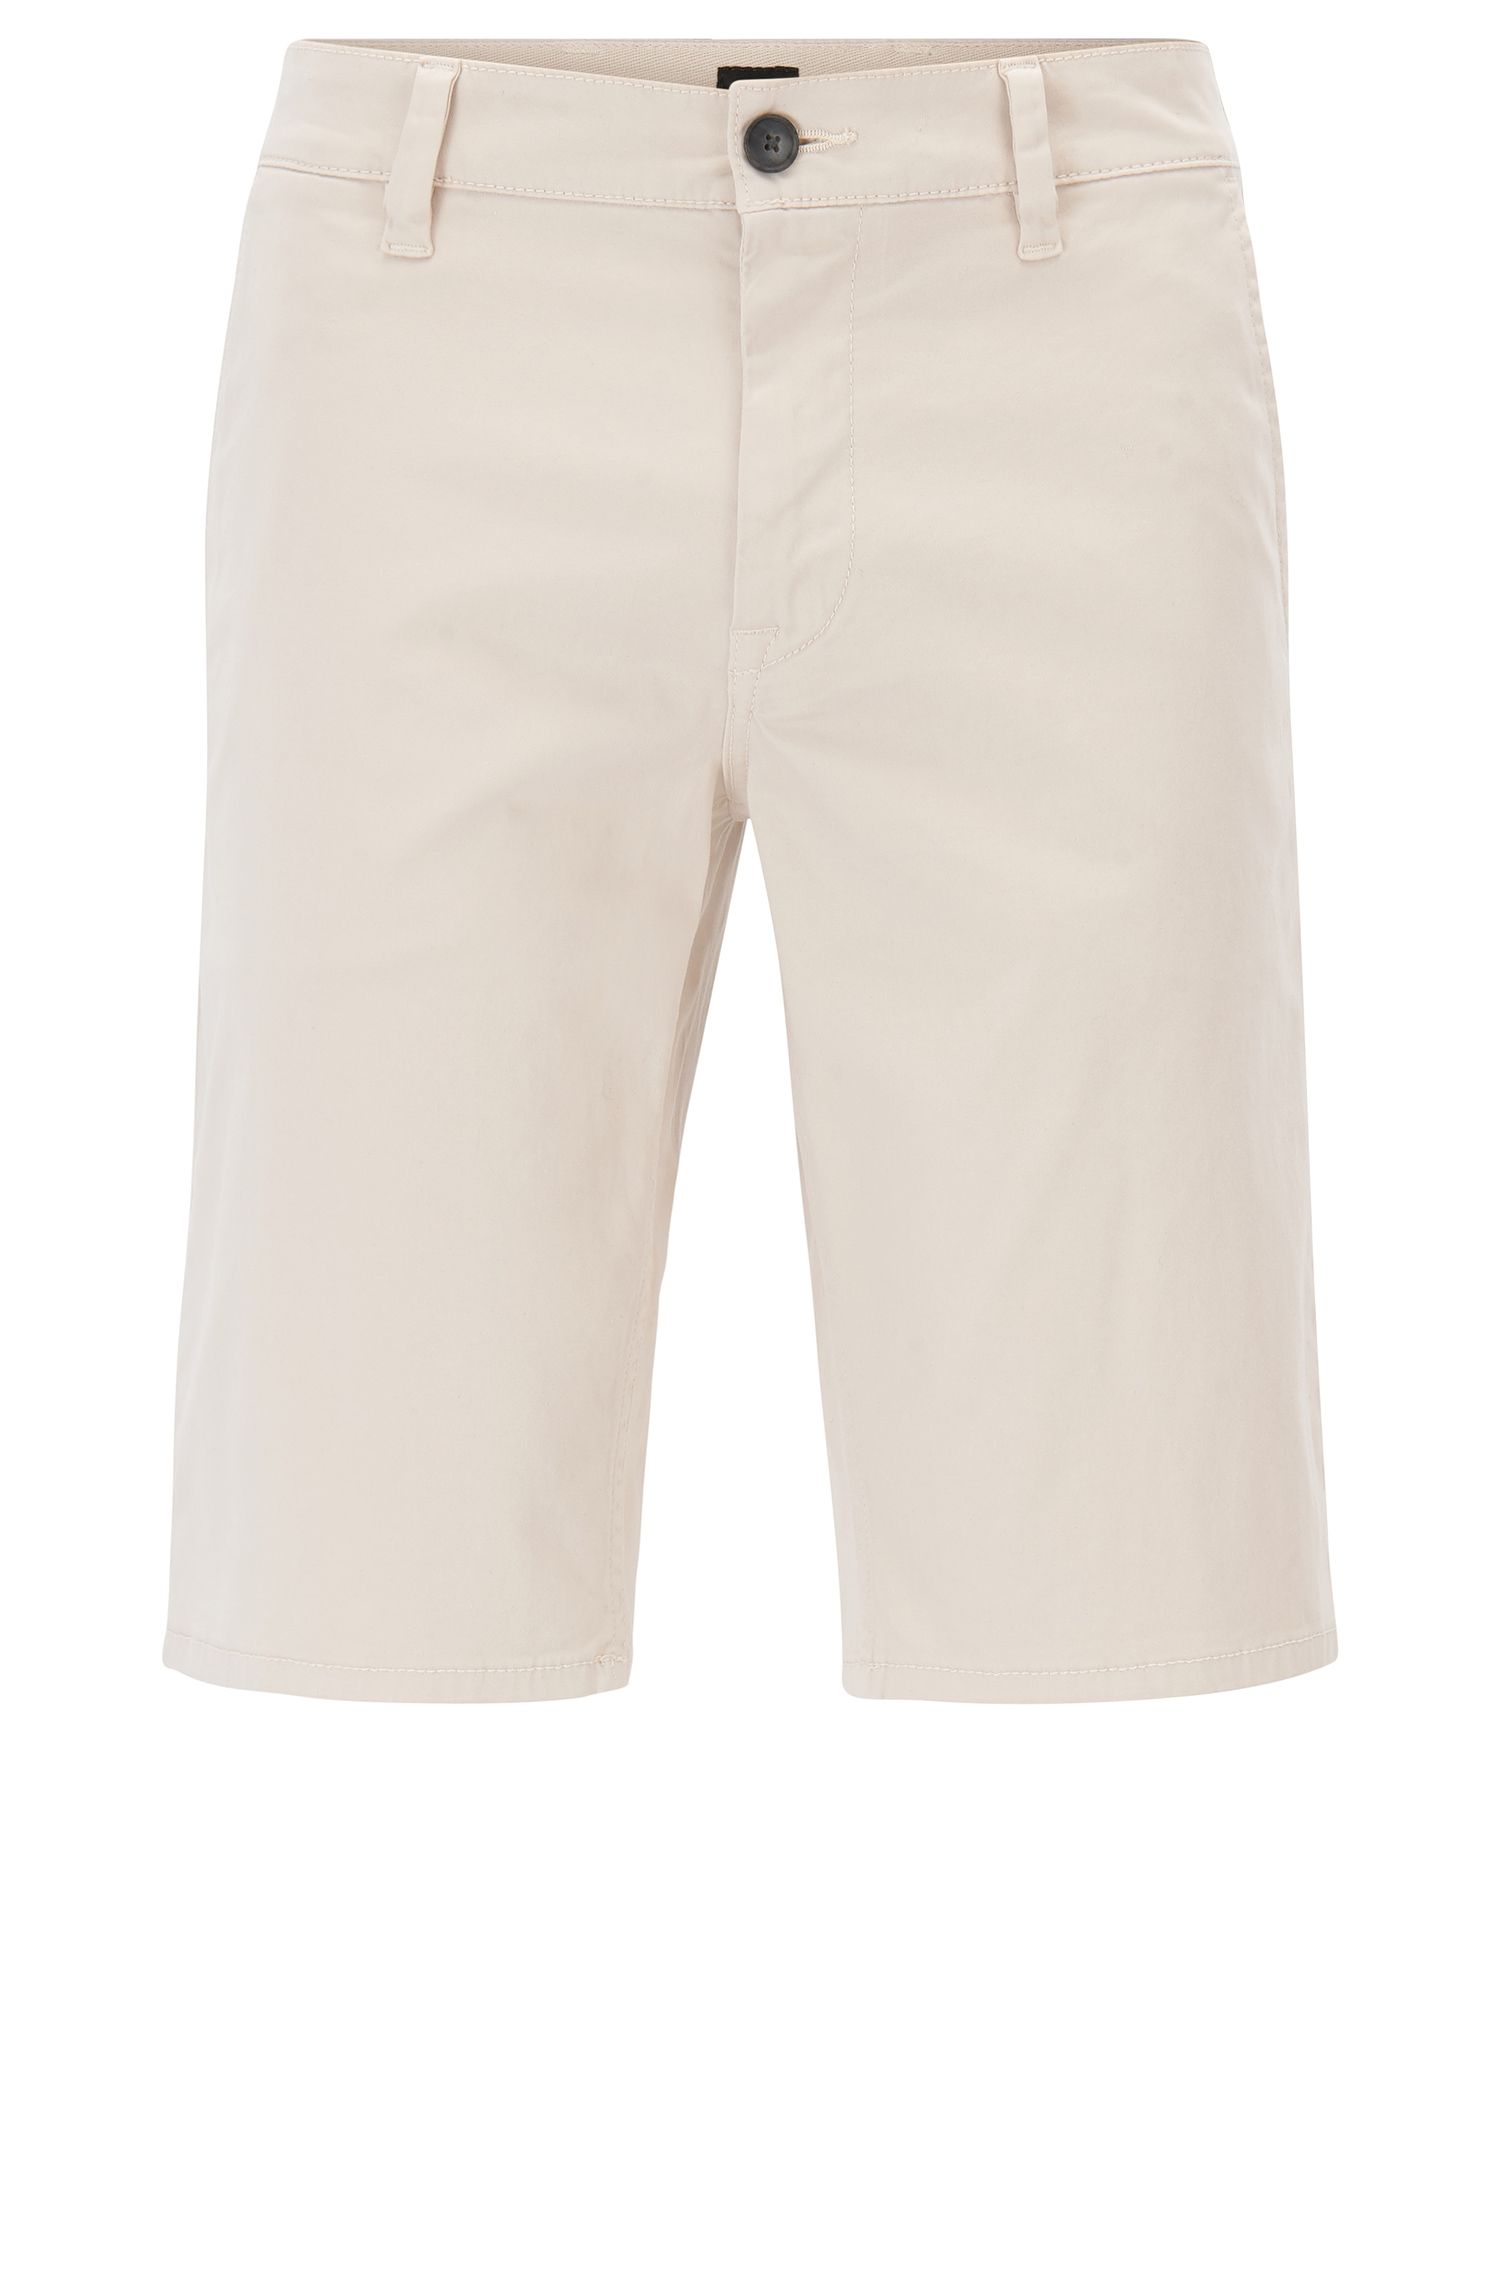 Short chino en coton stretch avec doubles passants